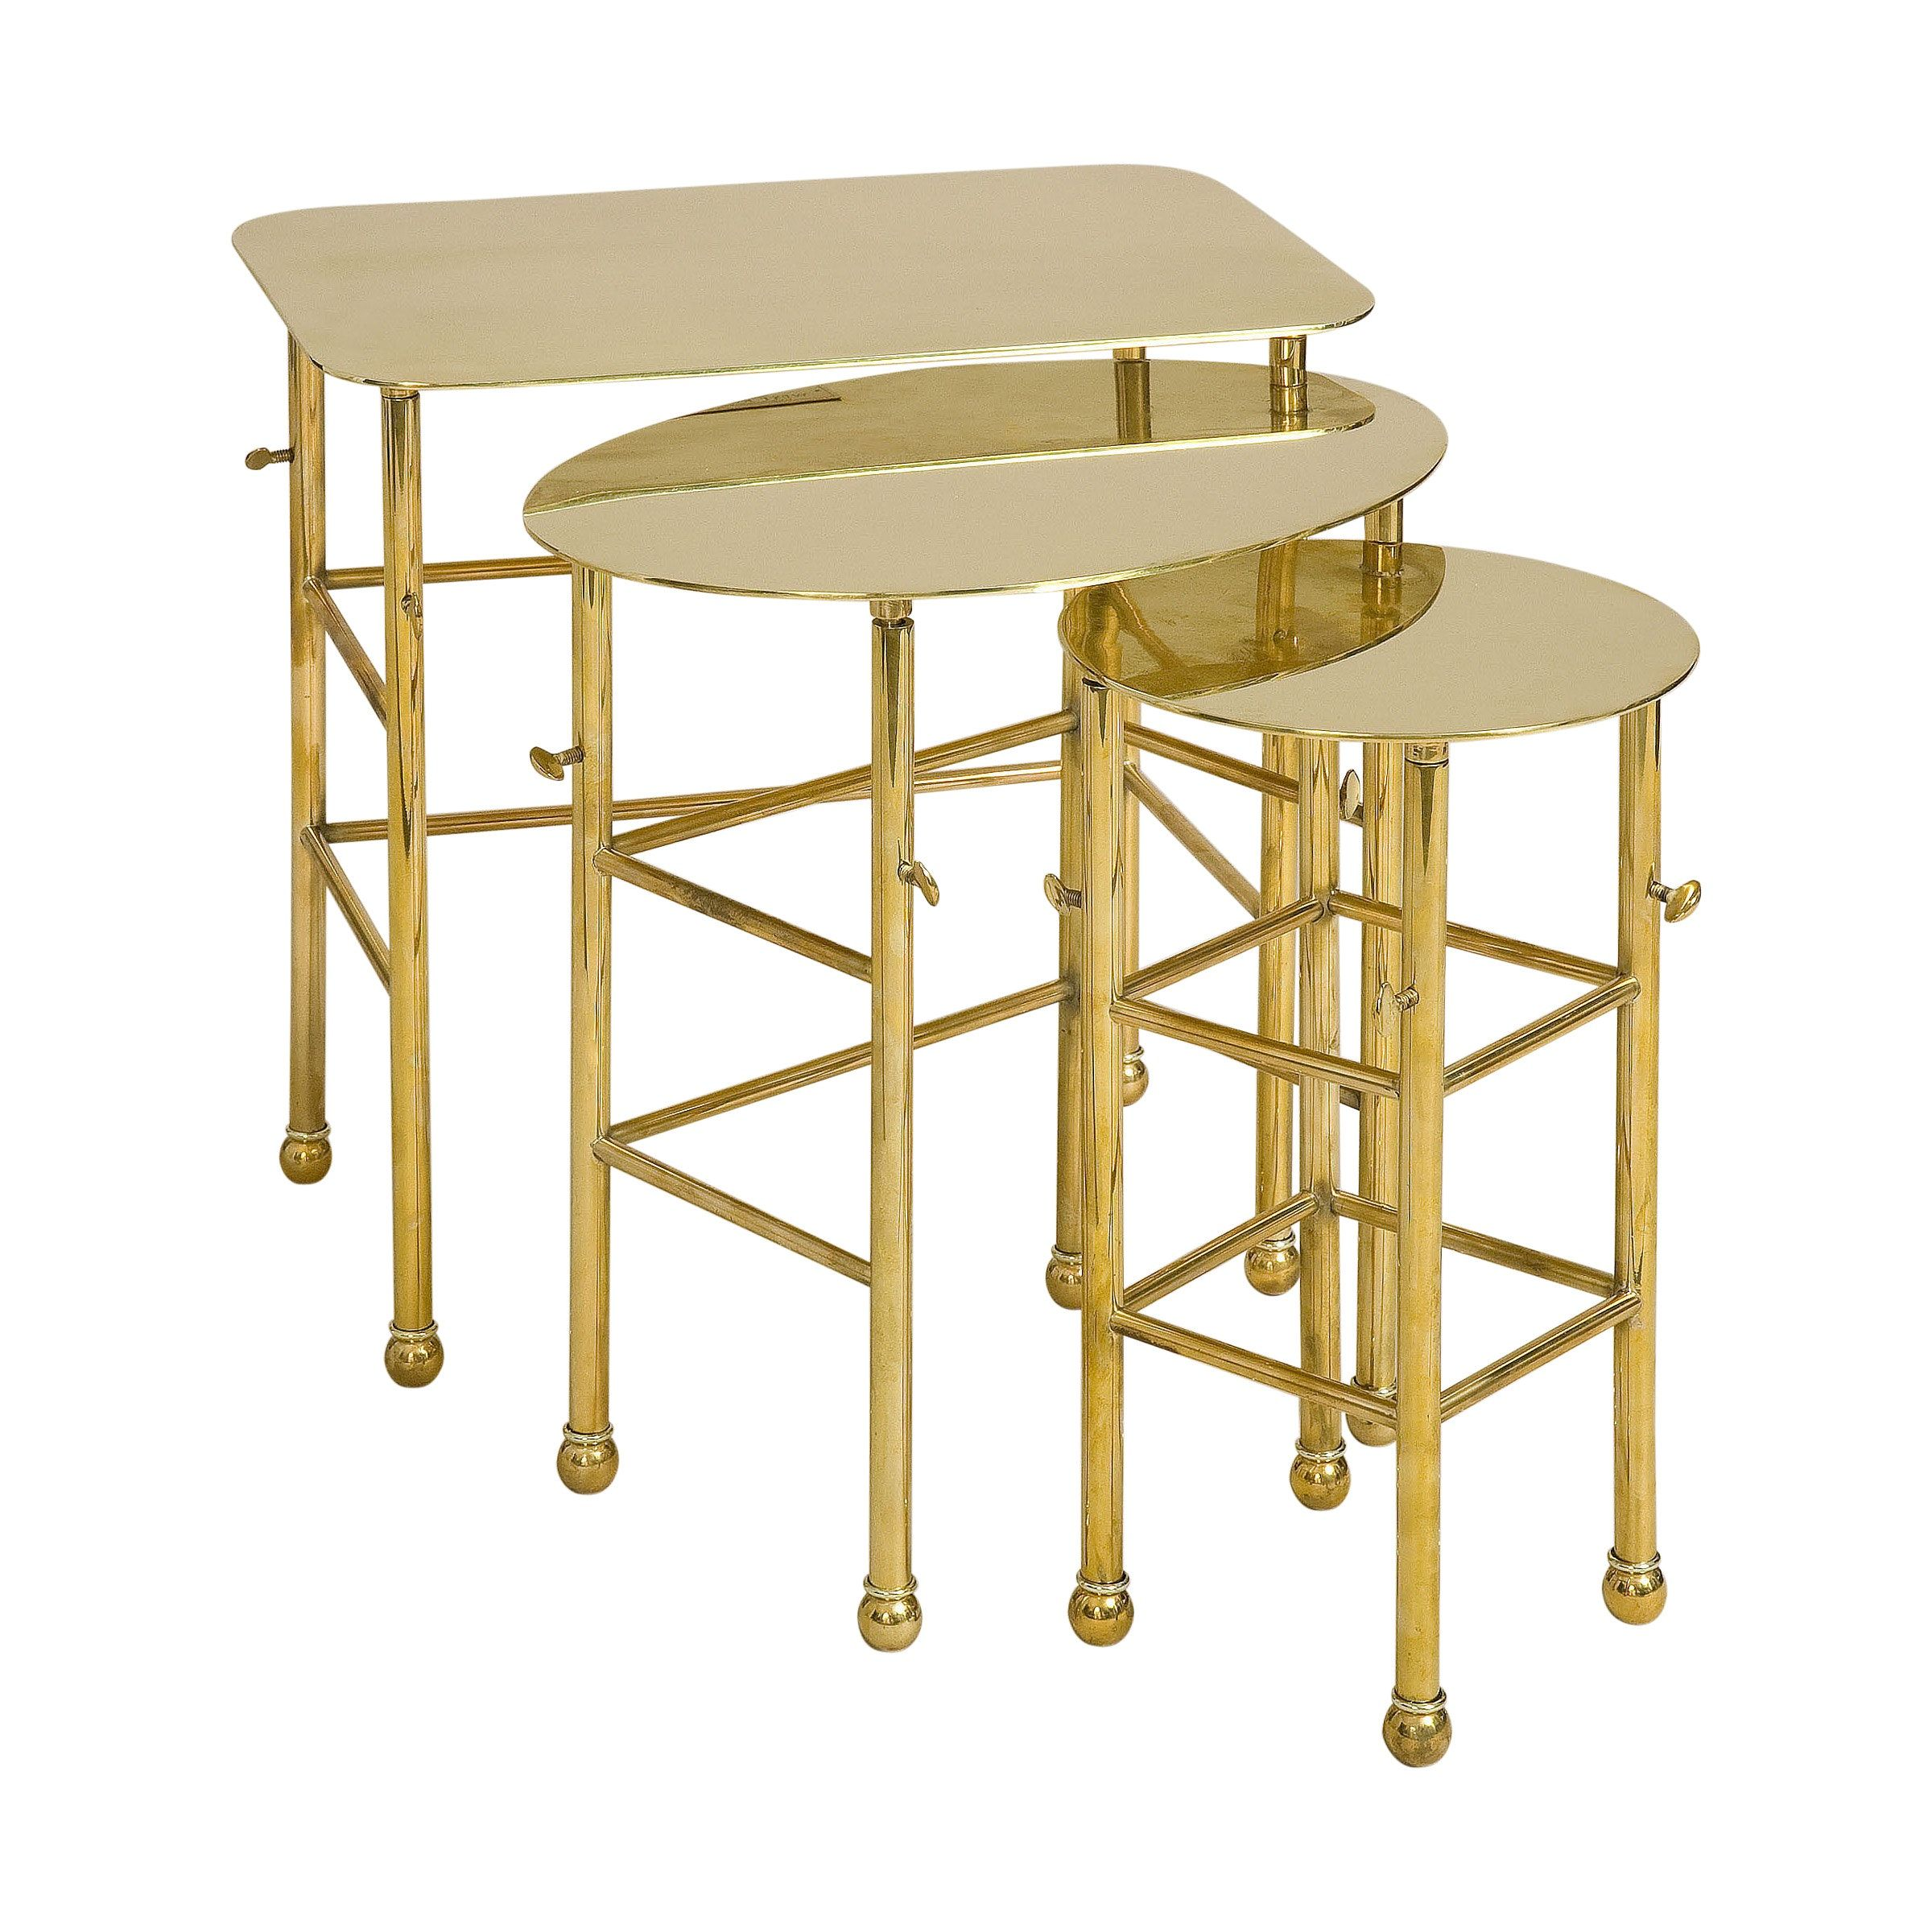 Elizabeth Brass Nesting Tables By West Knoll Collection Nesting Tables Summit Furniture Table